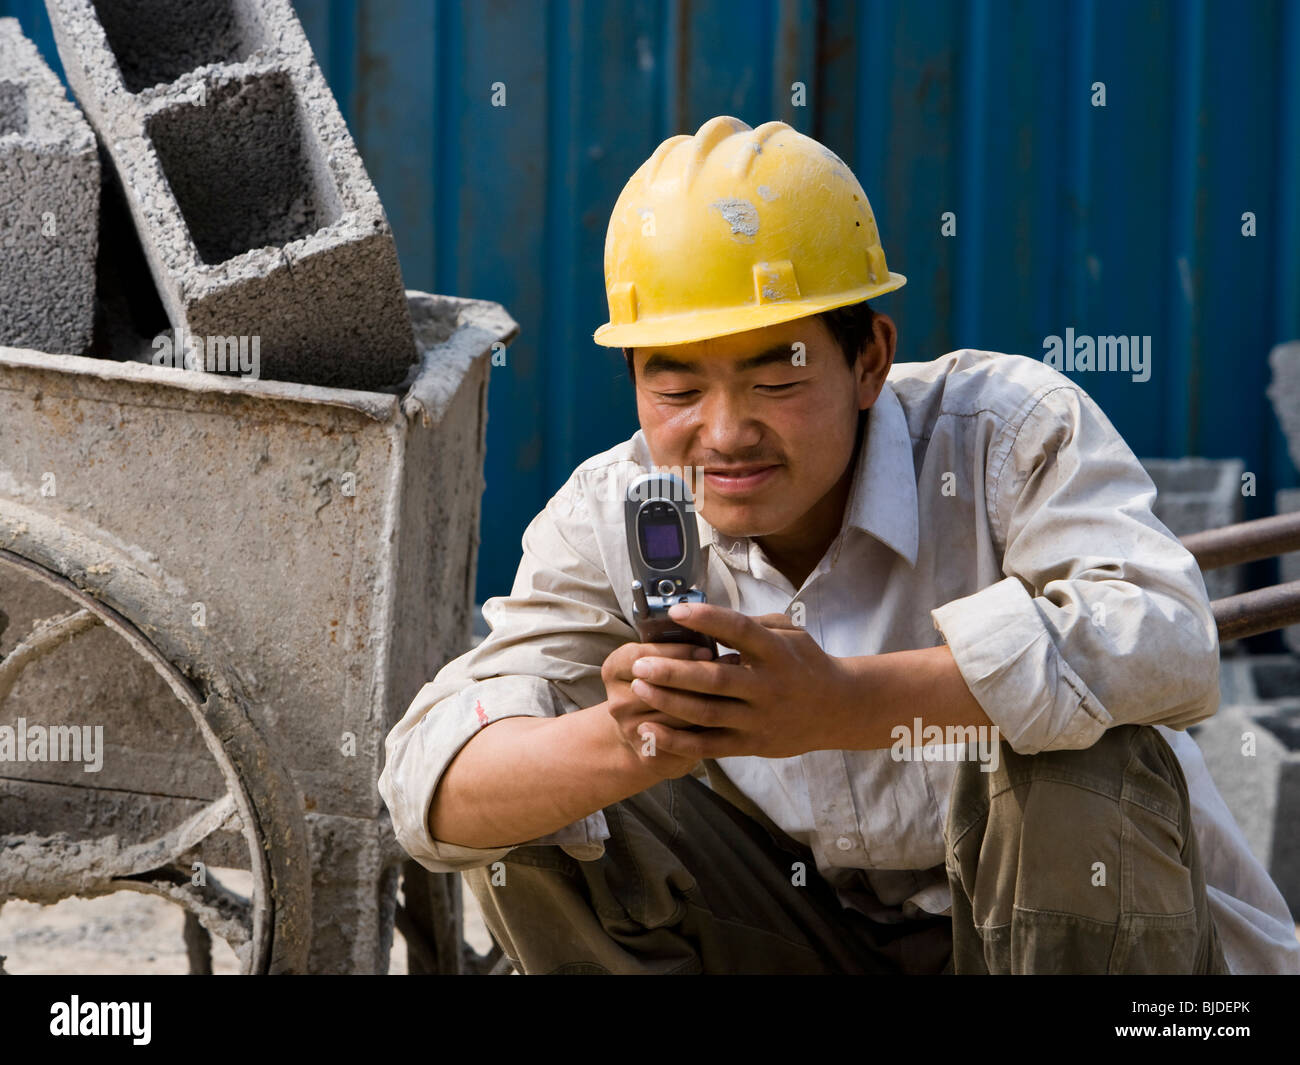 Construction worker looking at his cell phone. Stock Photo